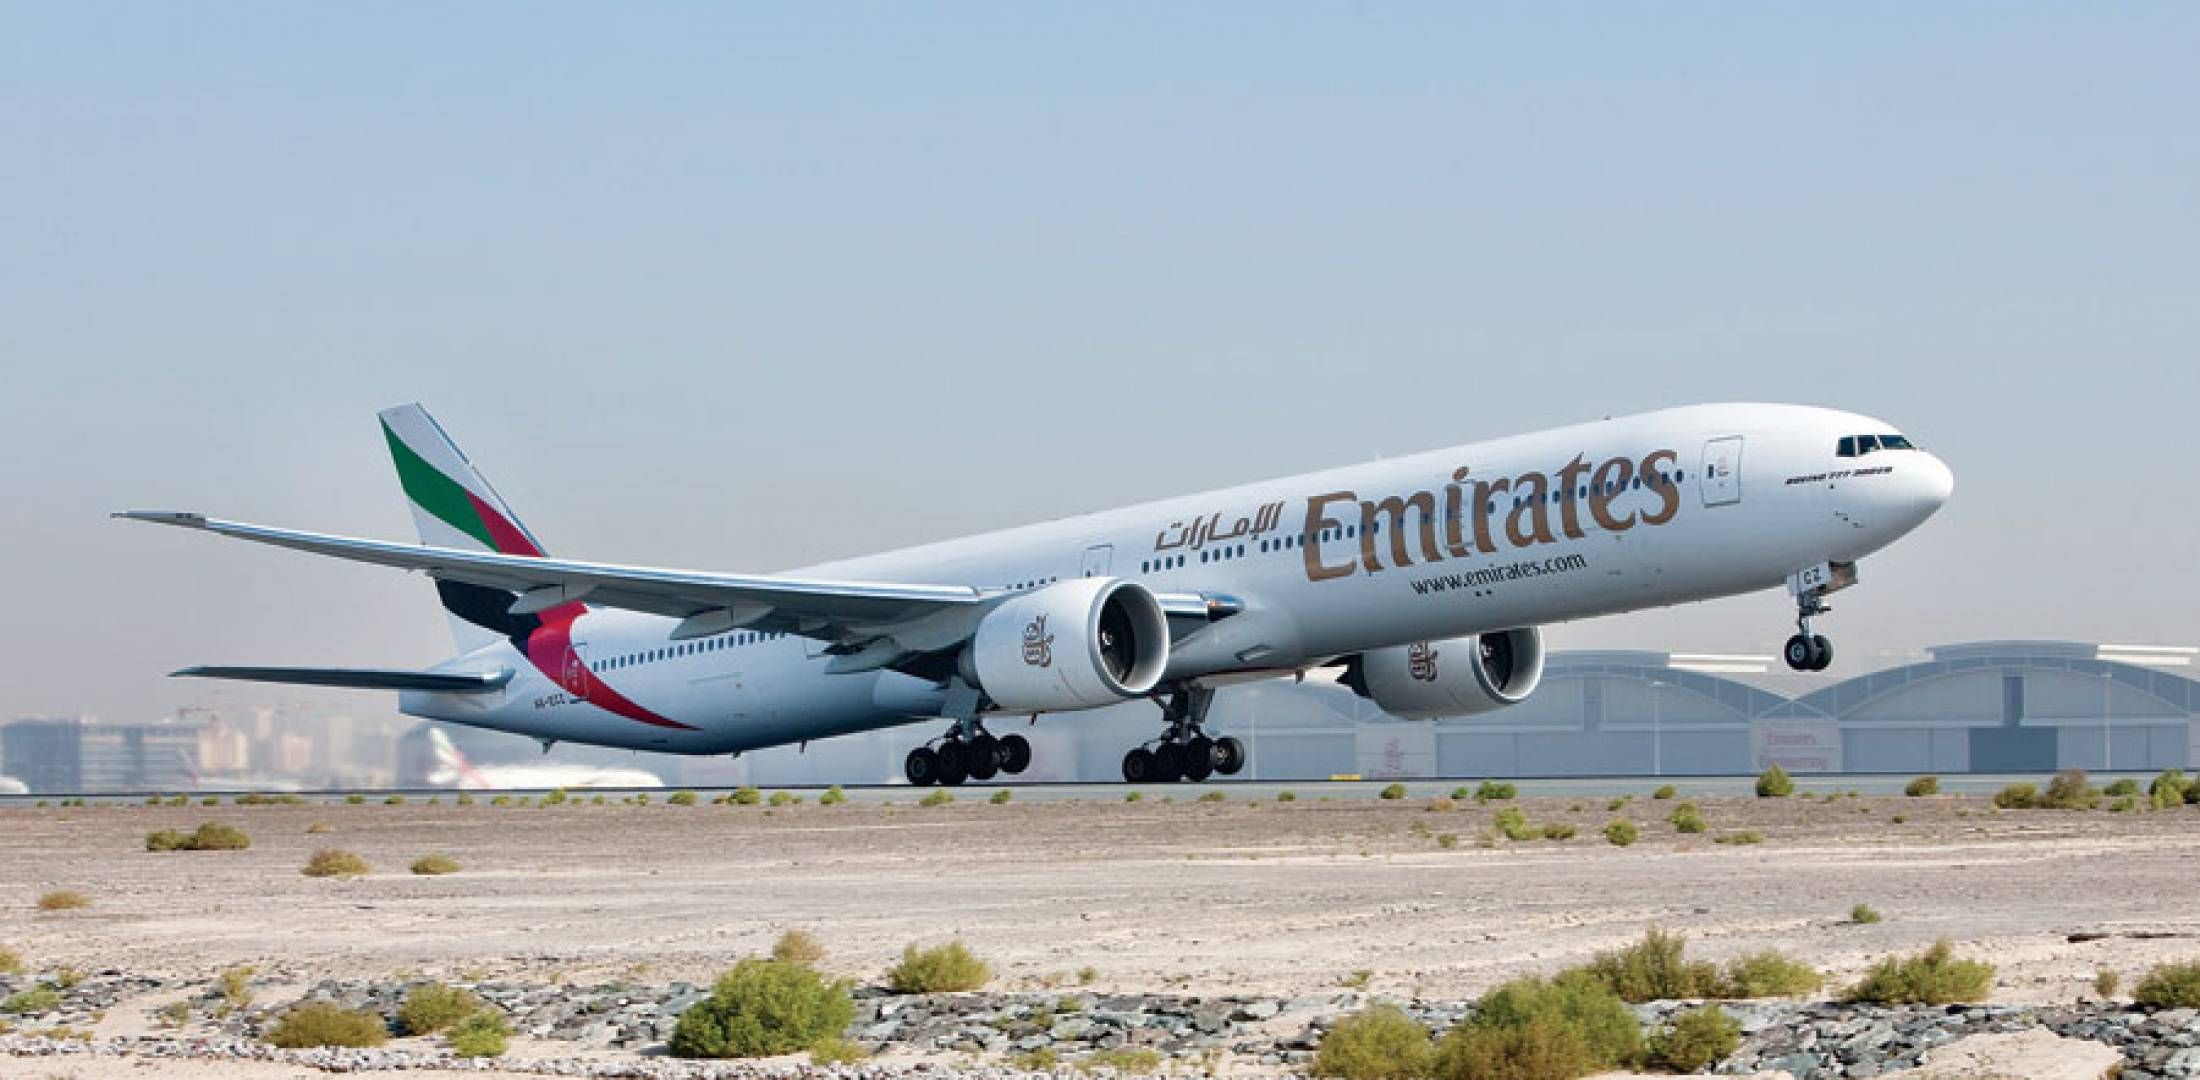 Emirates is predicted to continue to be the leading airline in the region in terms of brand name, overall size and experience. It currently is launching services to several additional locations in Europe, Asia and Africa.